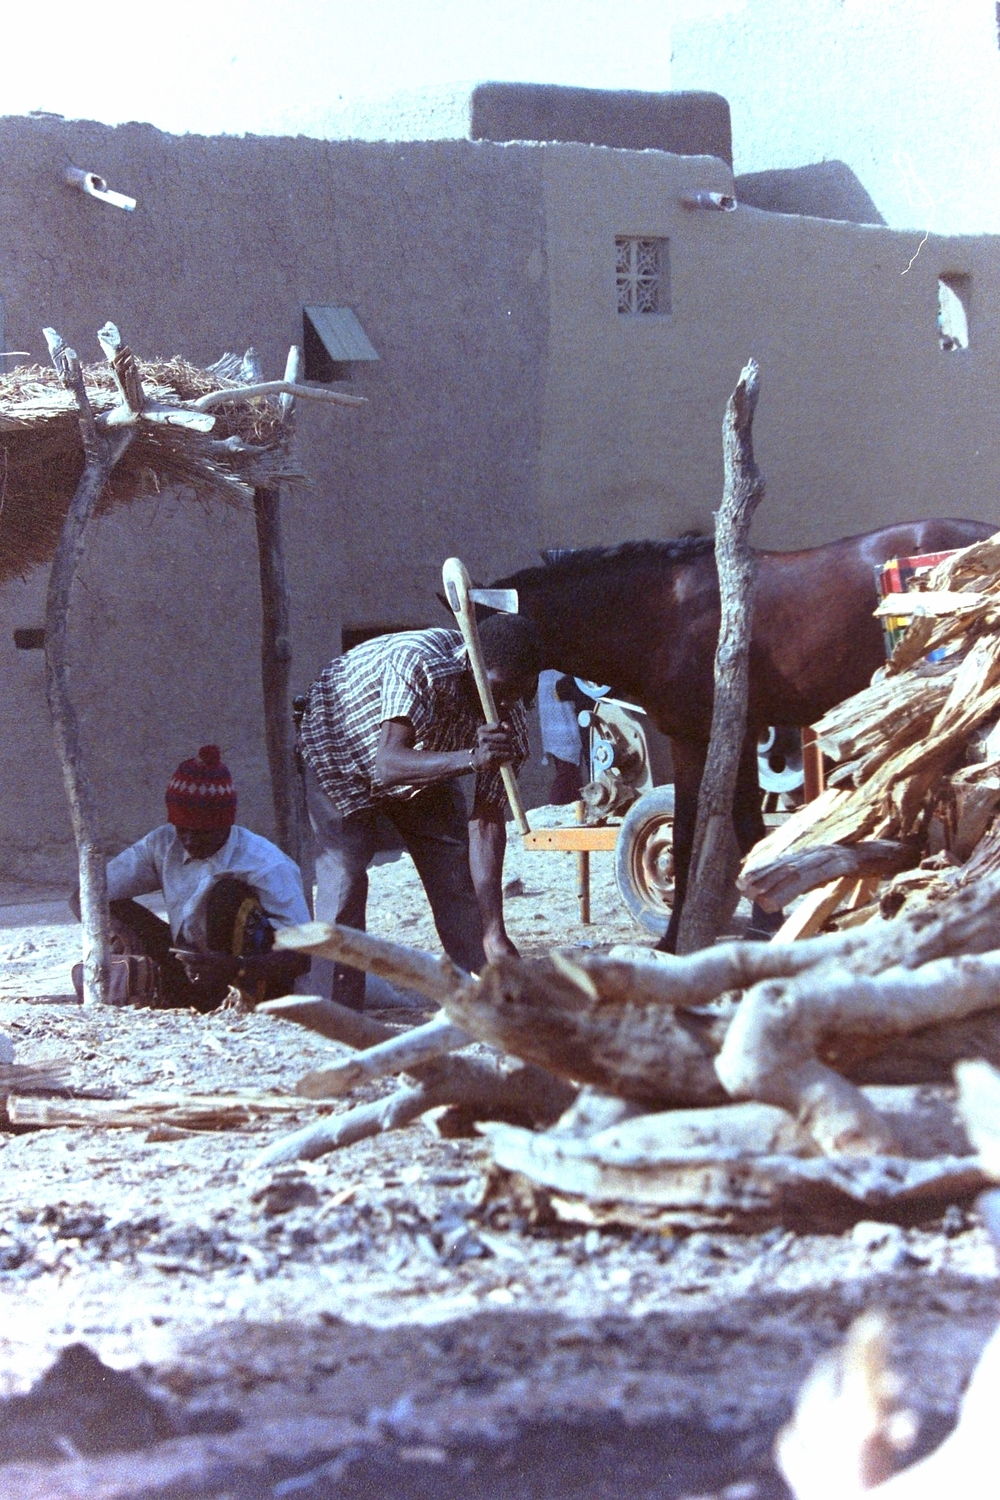 Daily chores in Timbuktu